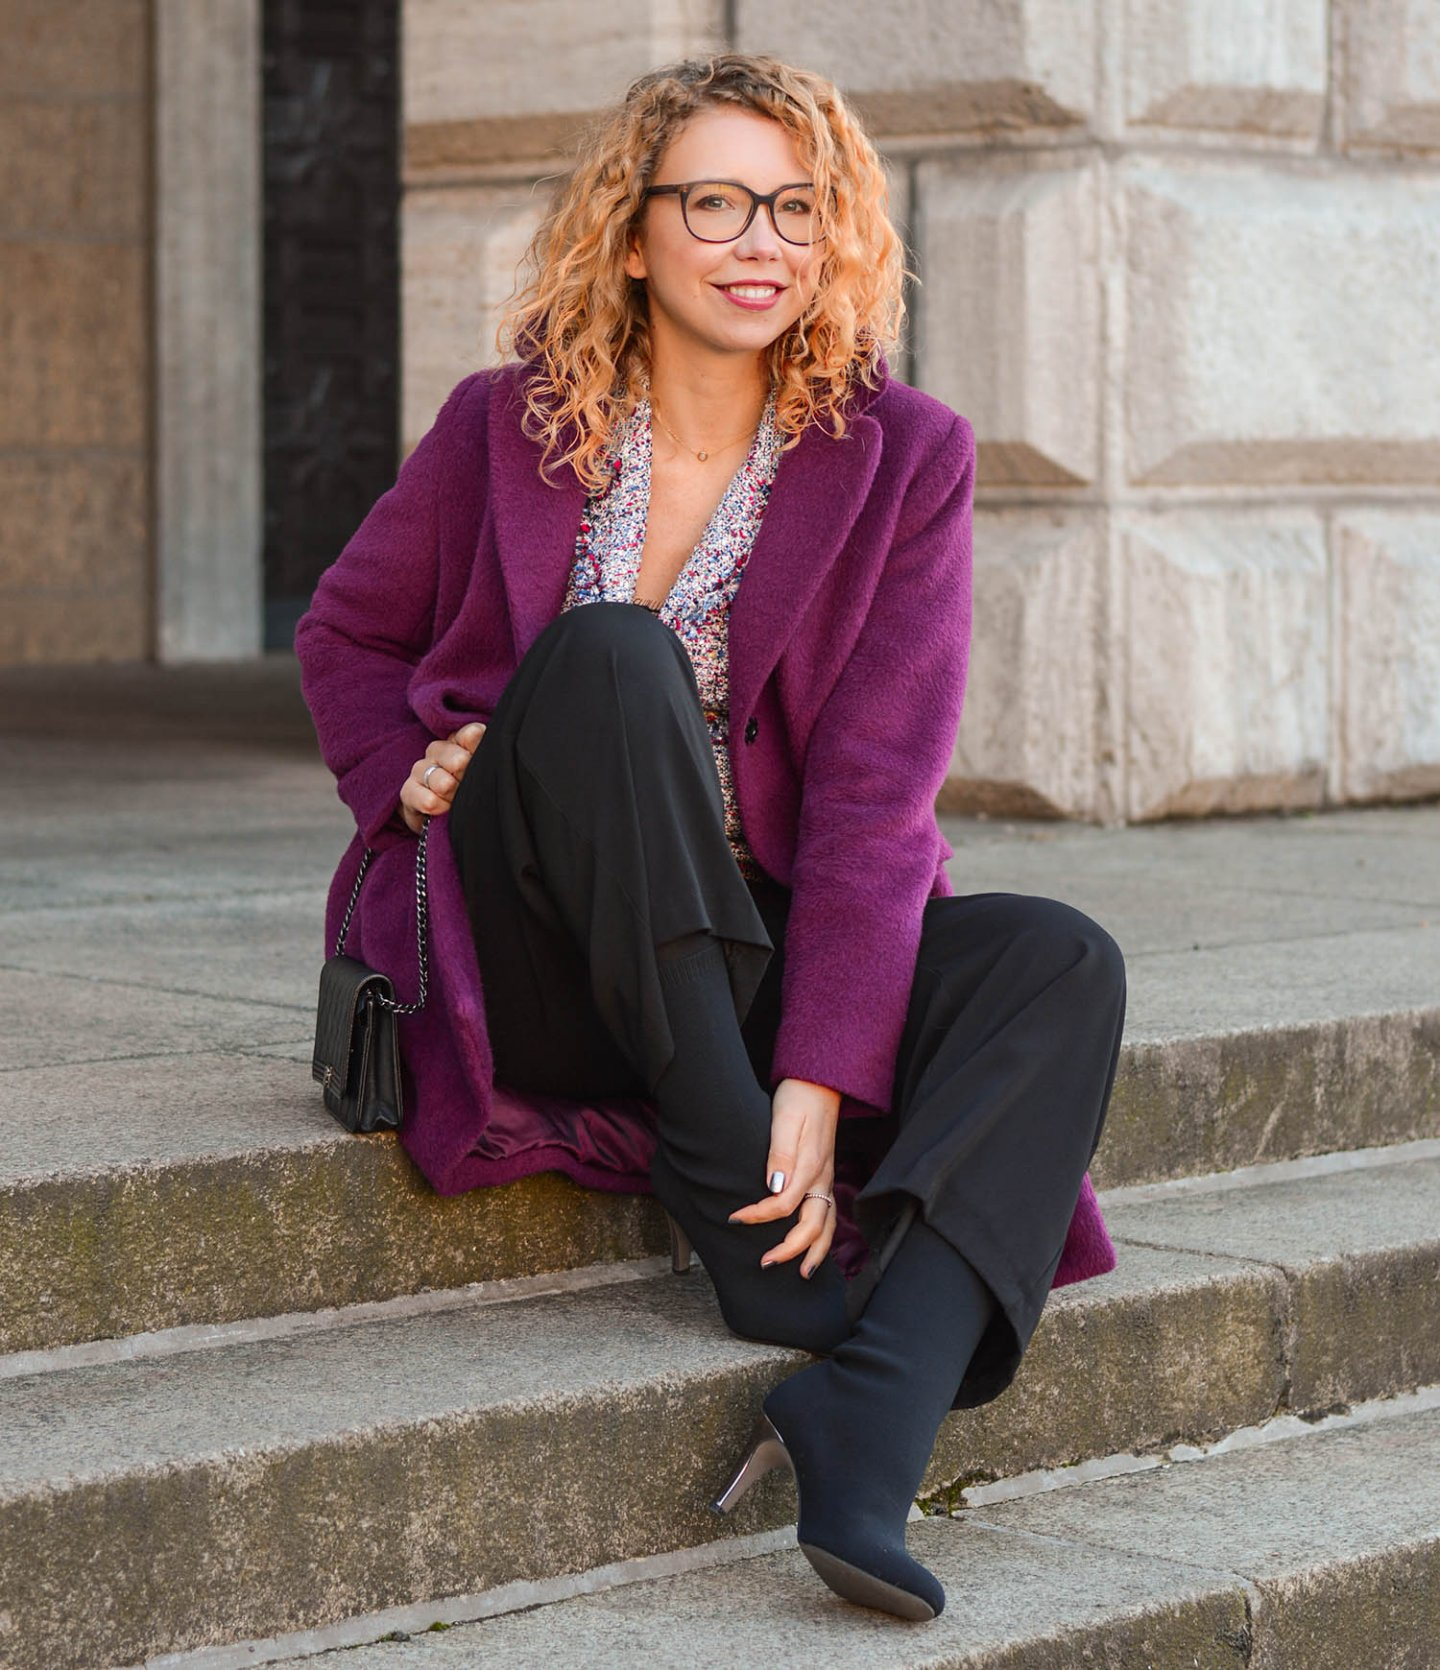 culottes-in-winter-purple-woolcoat-sockboots